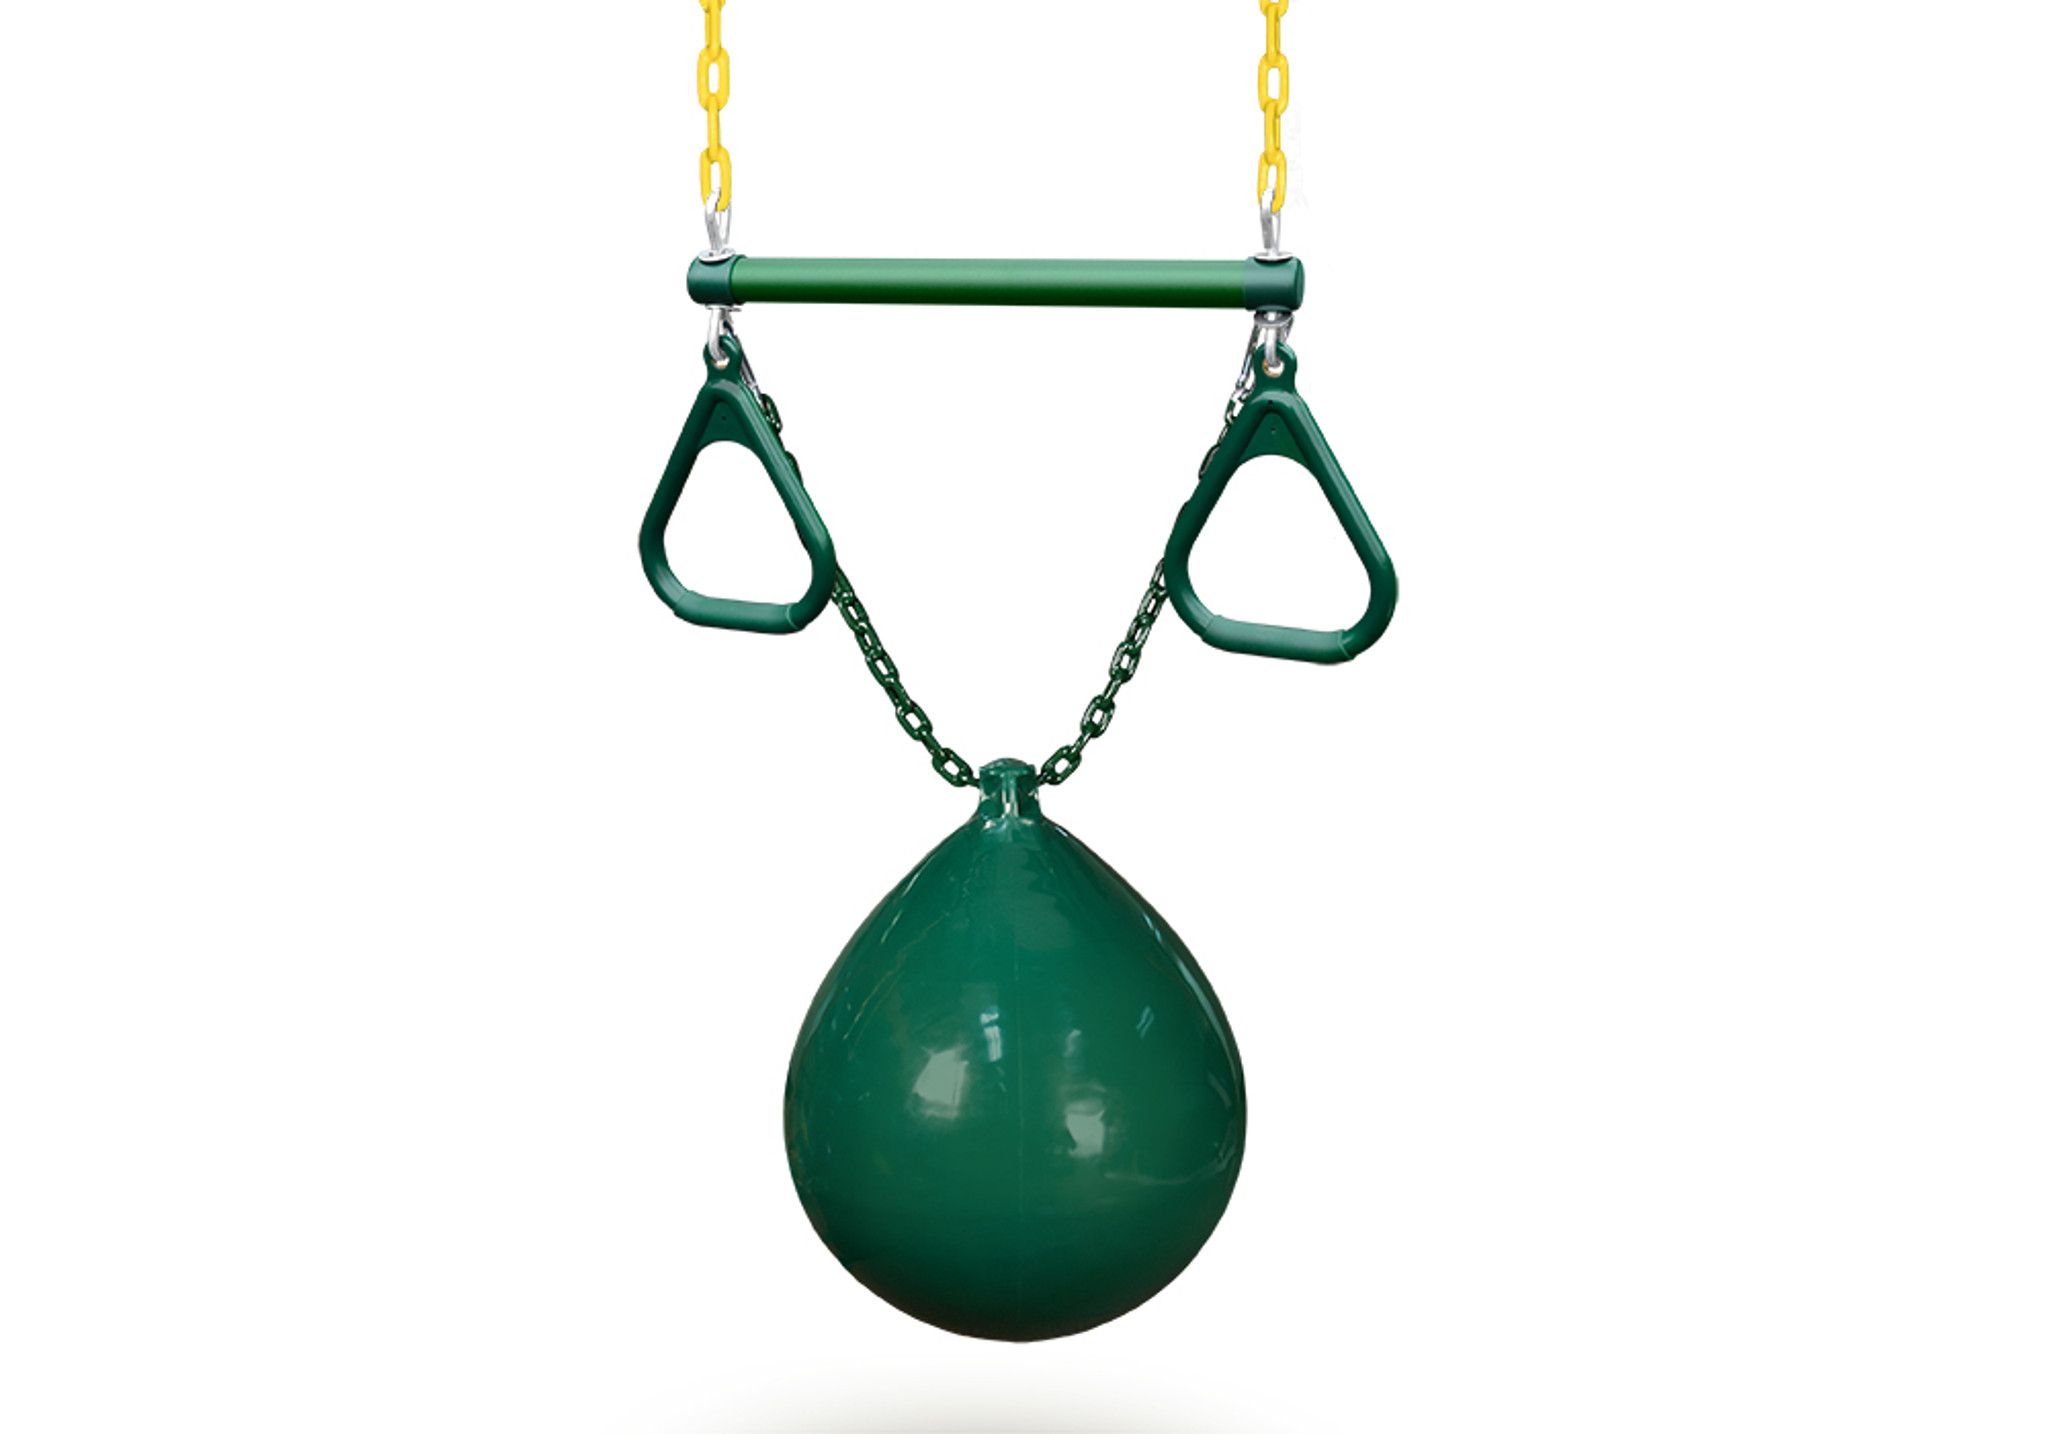 Buoy Ball w/ Trapeze Bar